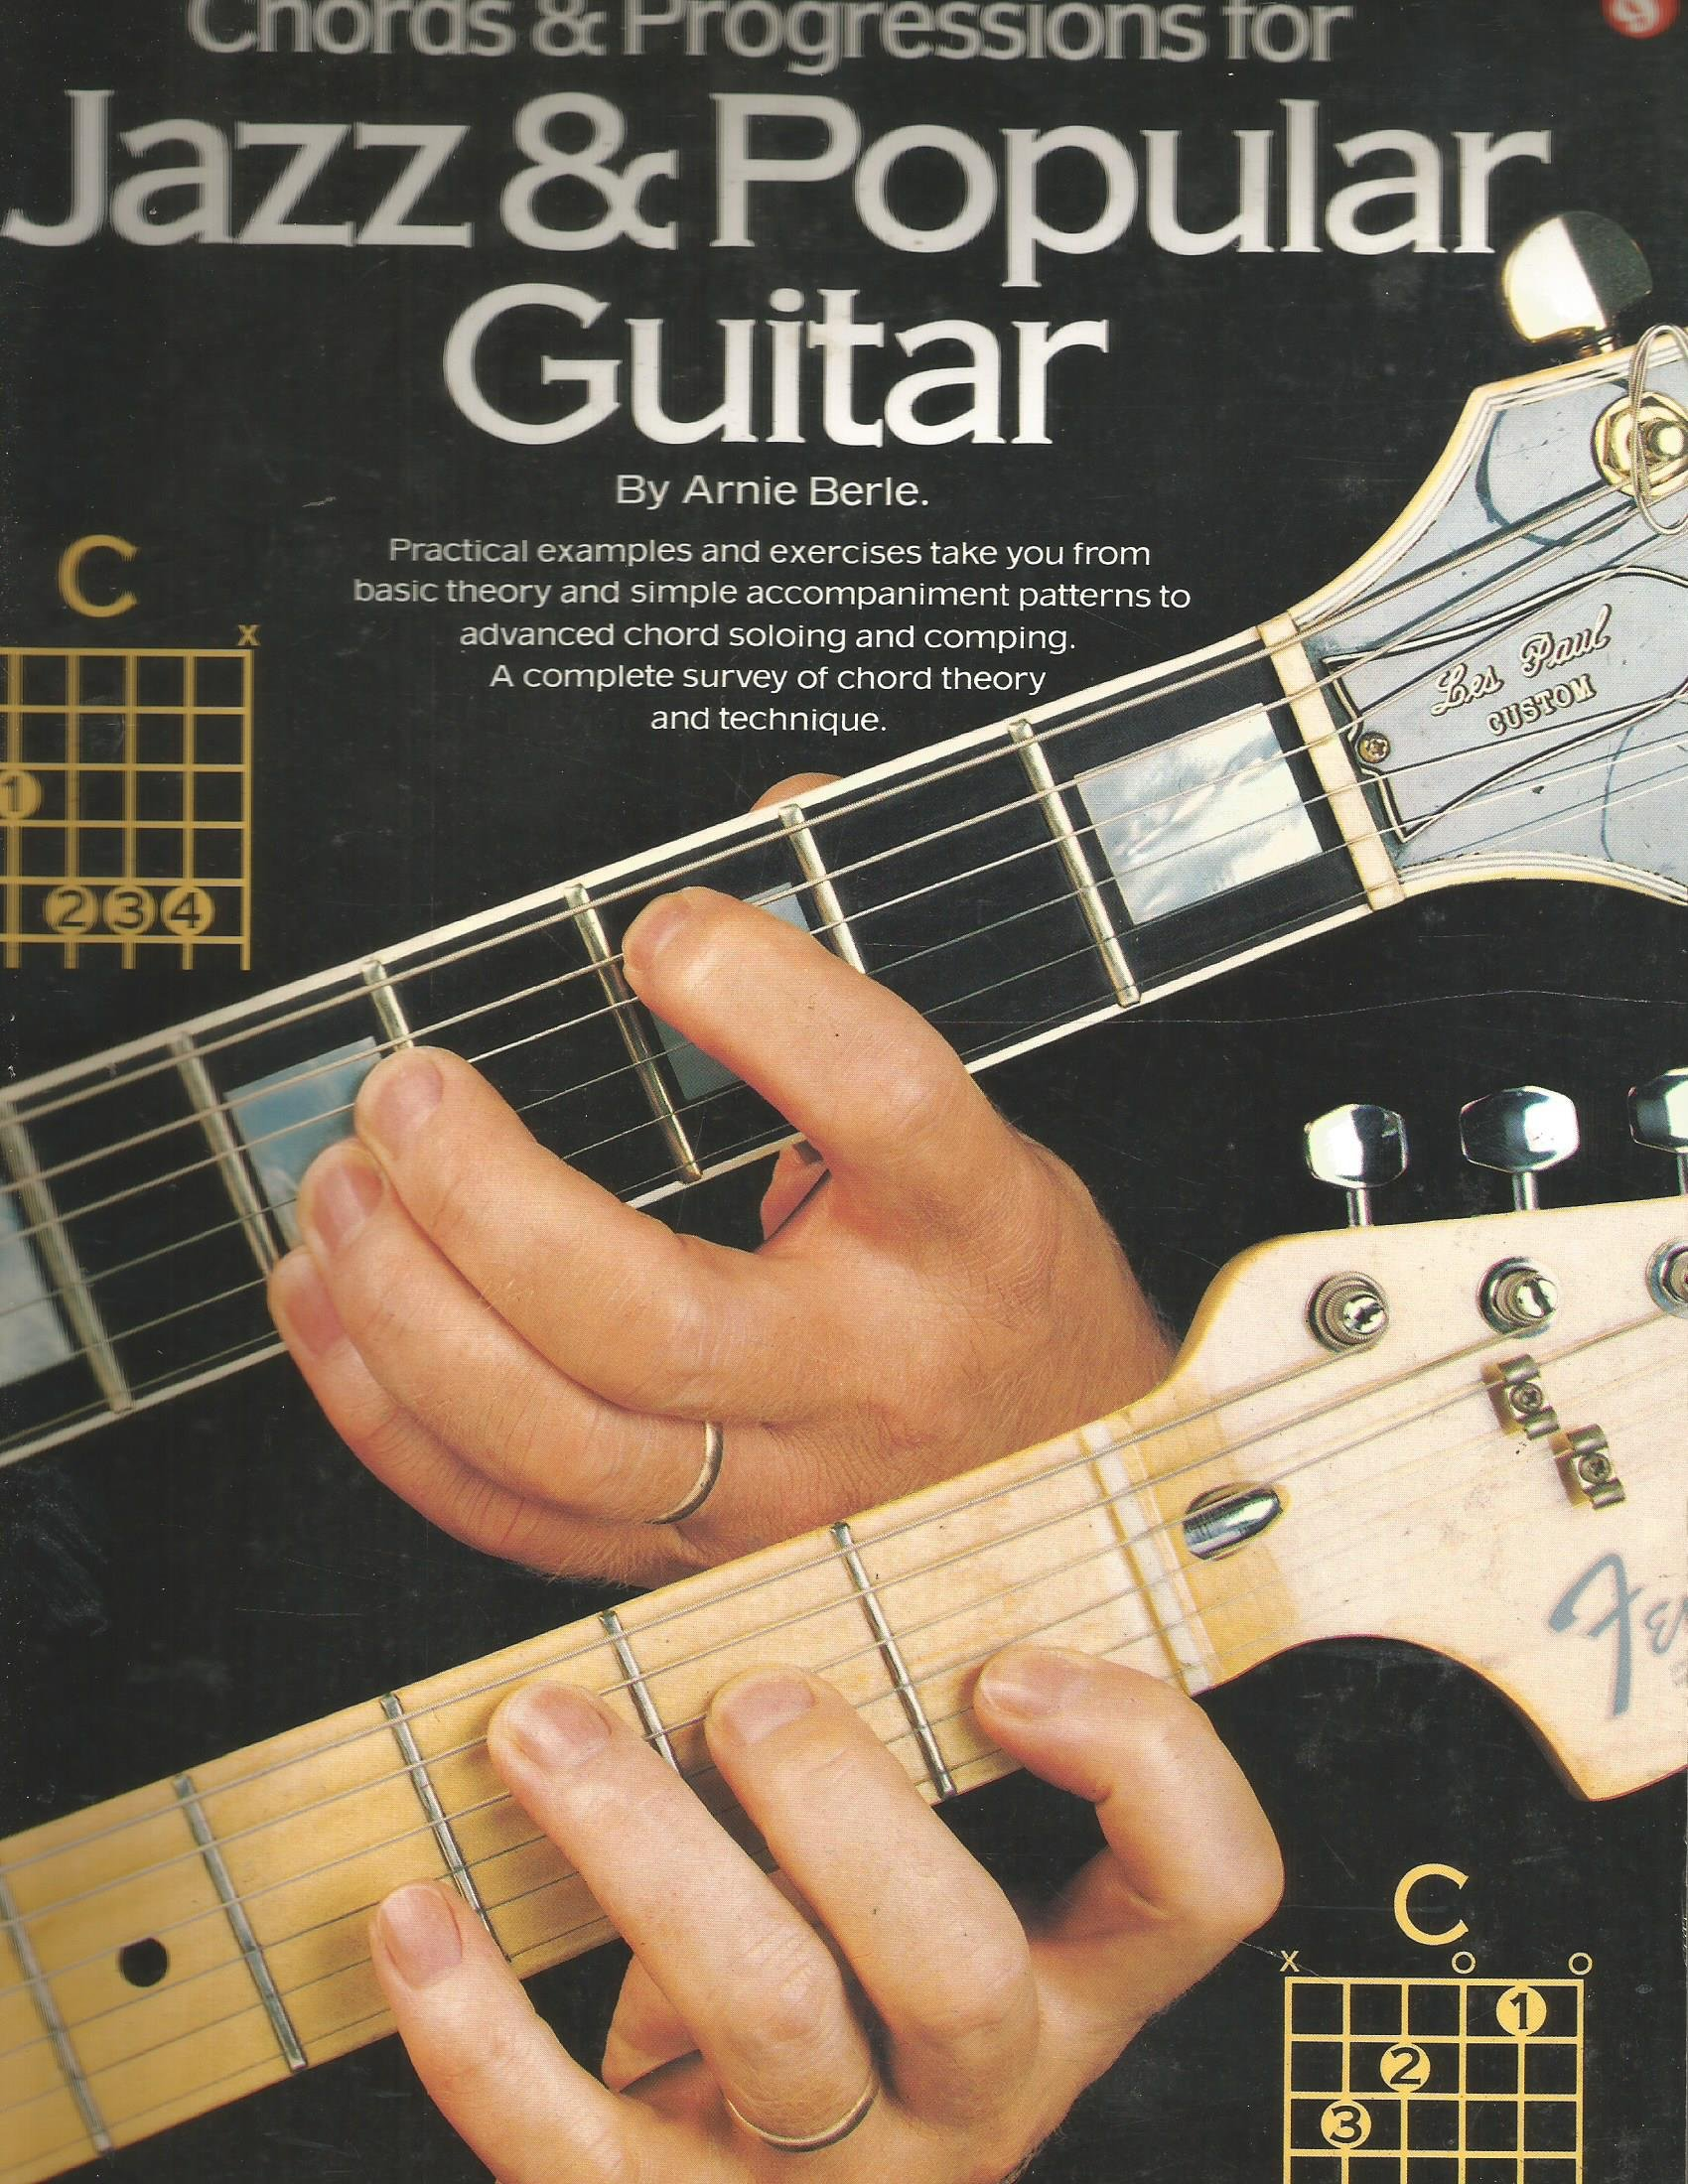 Chords and Progressions for Jazz and Popular Guitar by Arnie Berle ...